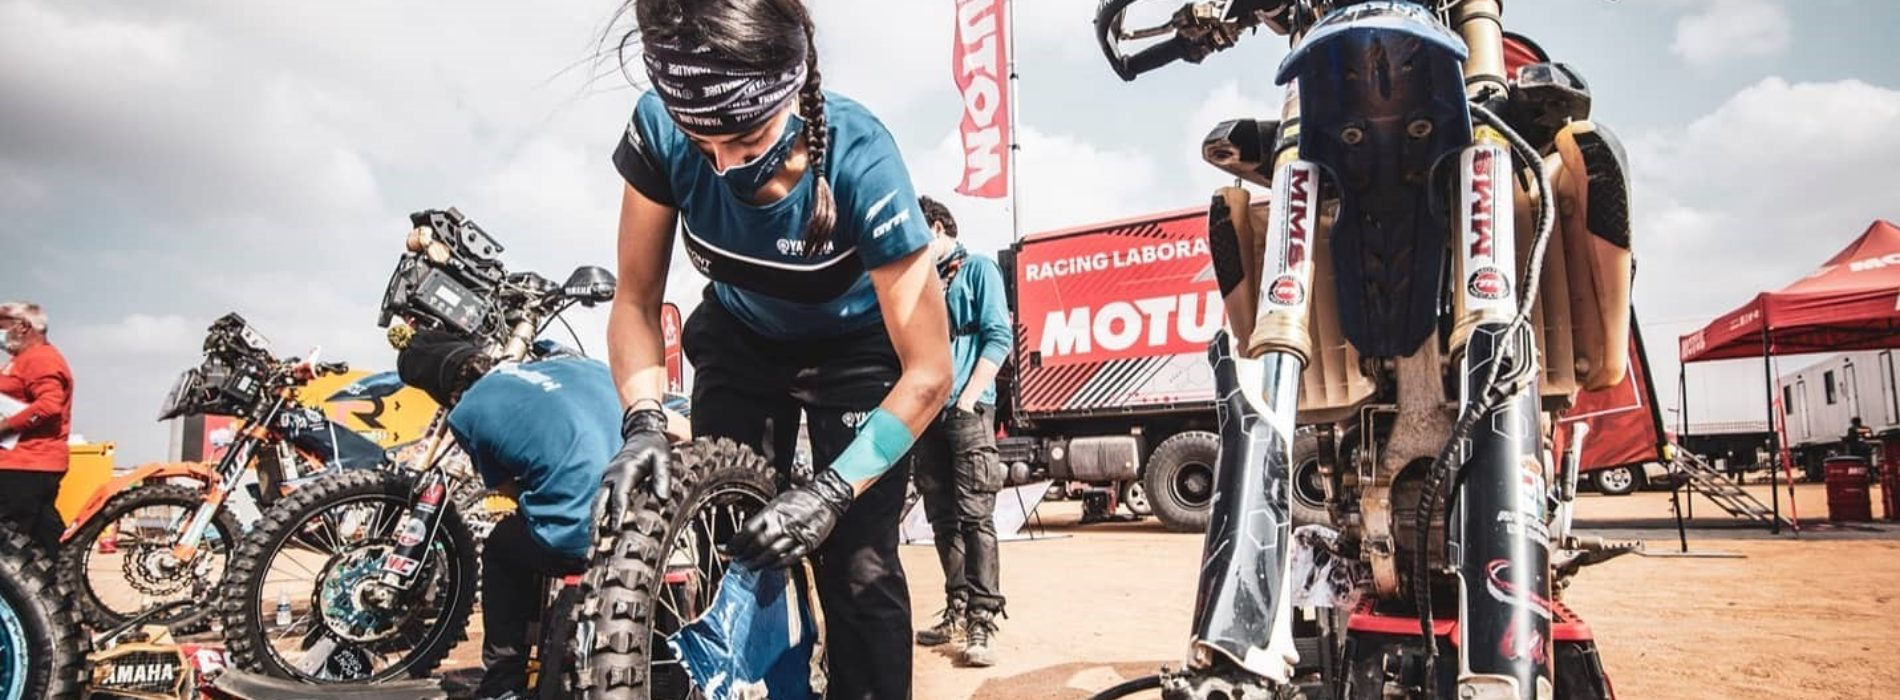 Sara Garcia reaches half-way point in Dakar Rally currently ranked 53rd Overall- truly remarkable!